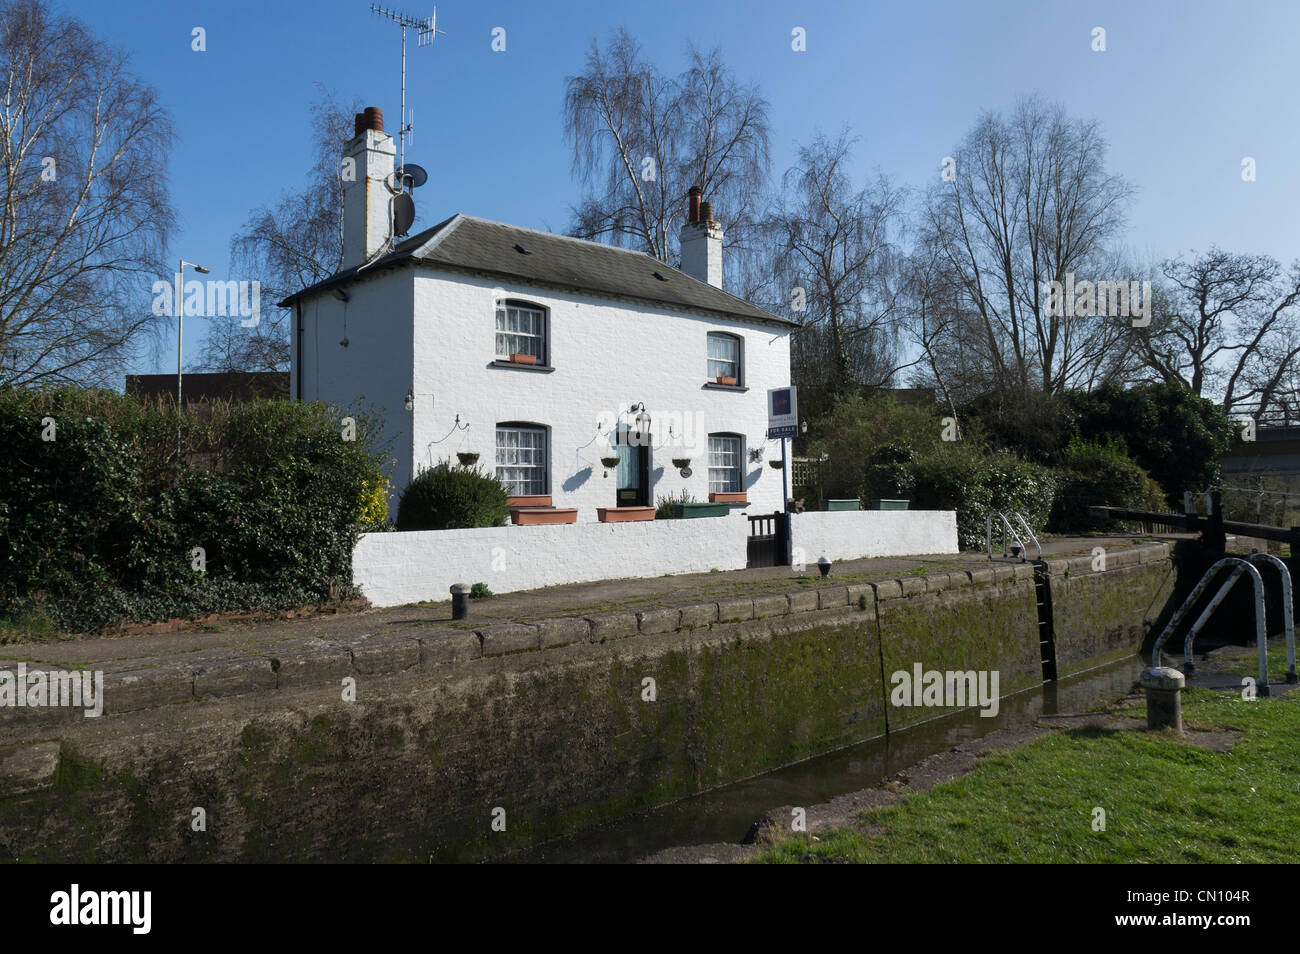 House For Sale At Home Park Lock No70 Grand Union Canal Kings Langley Herts UK